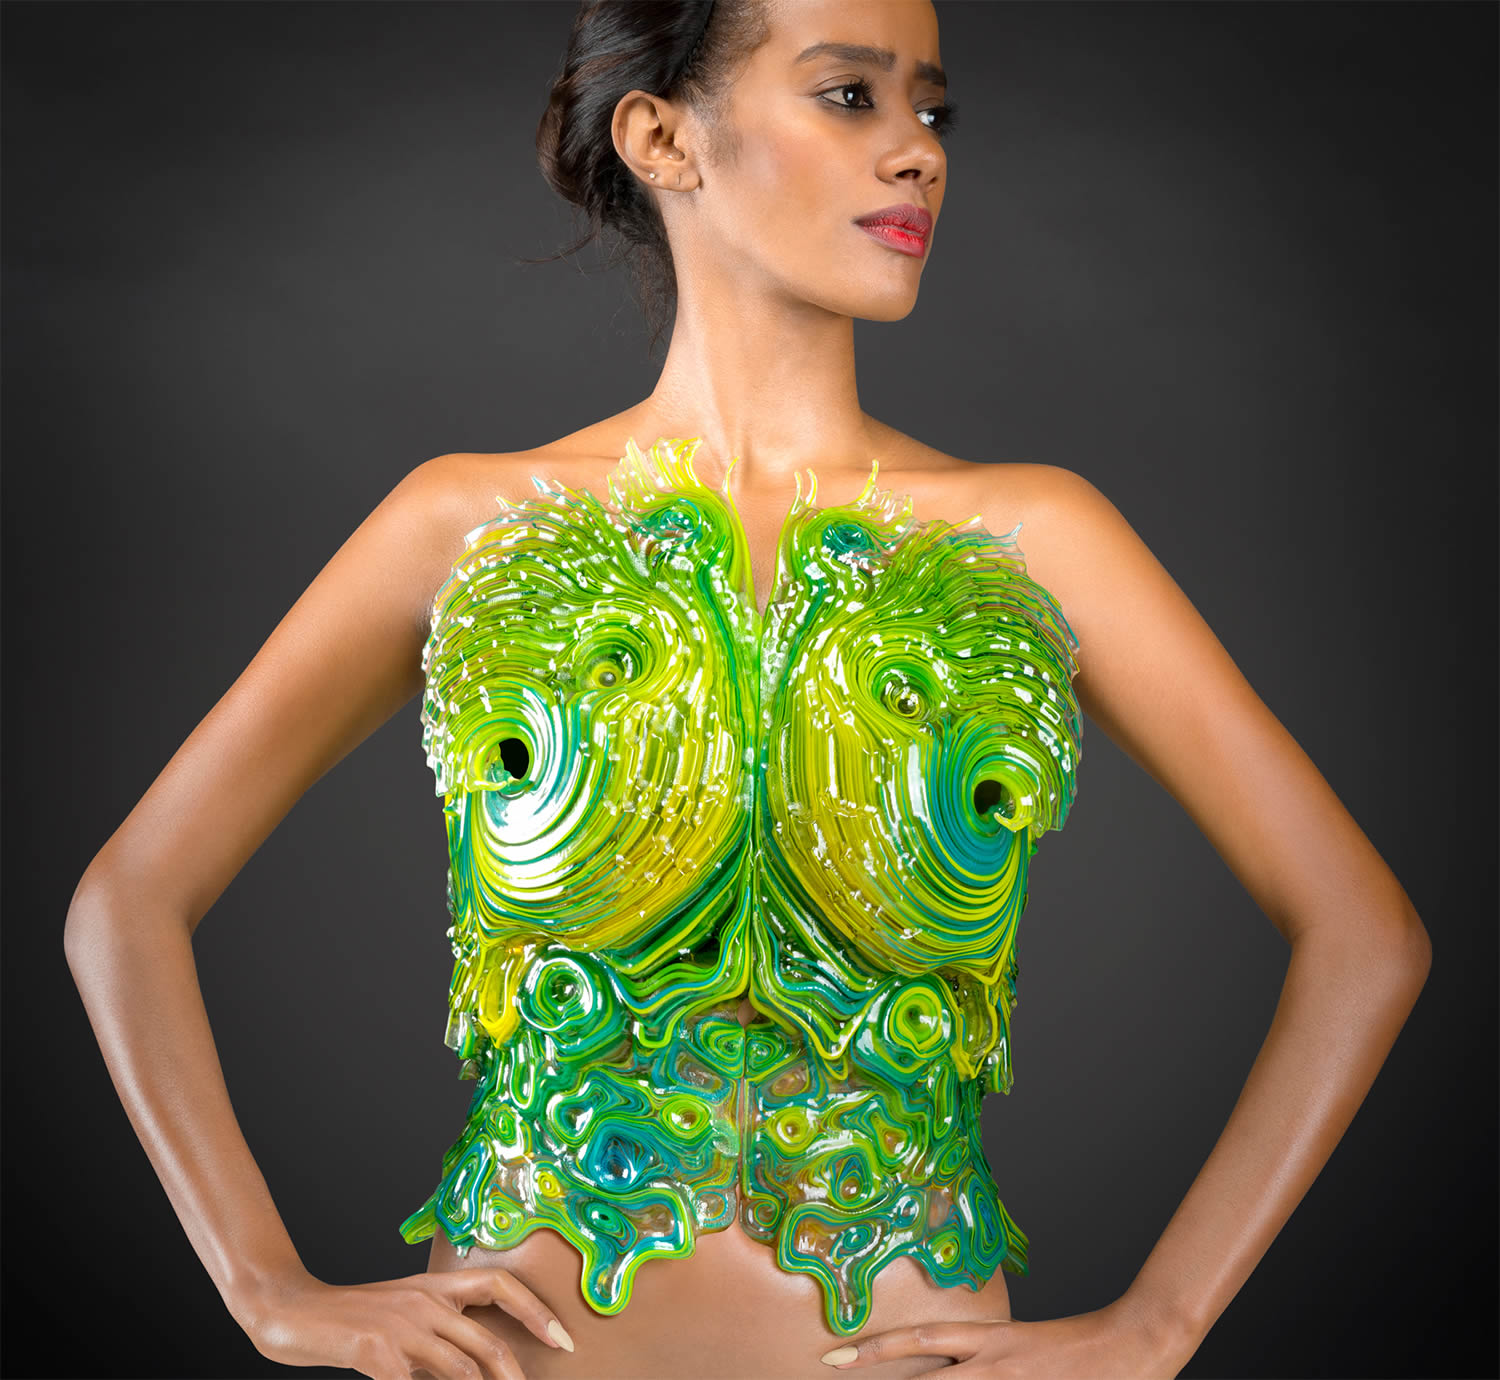 futuristic green dress by Neri Oxman